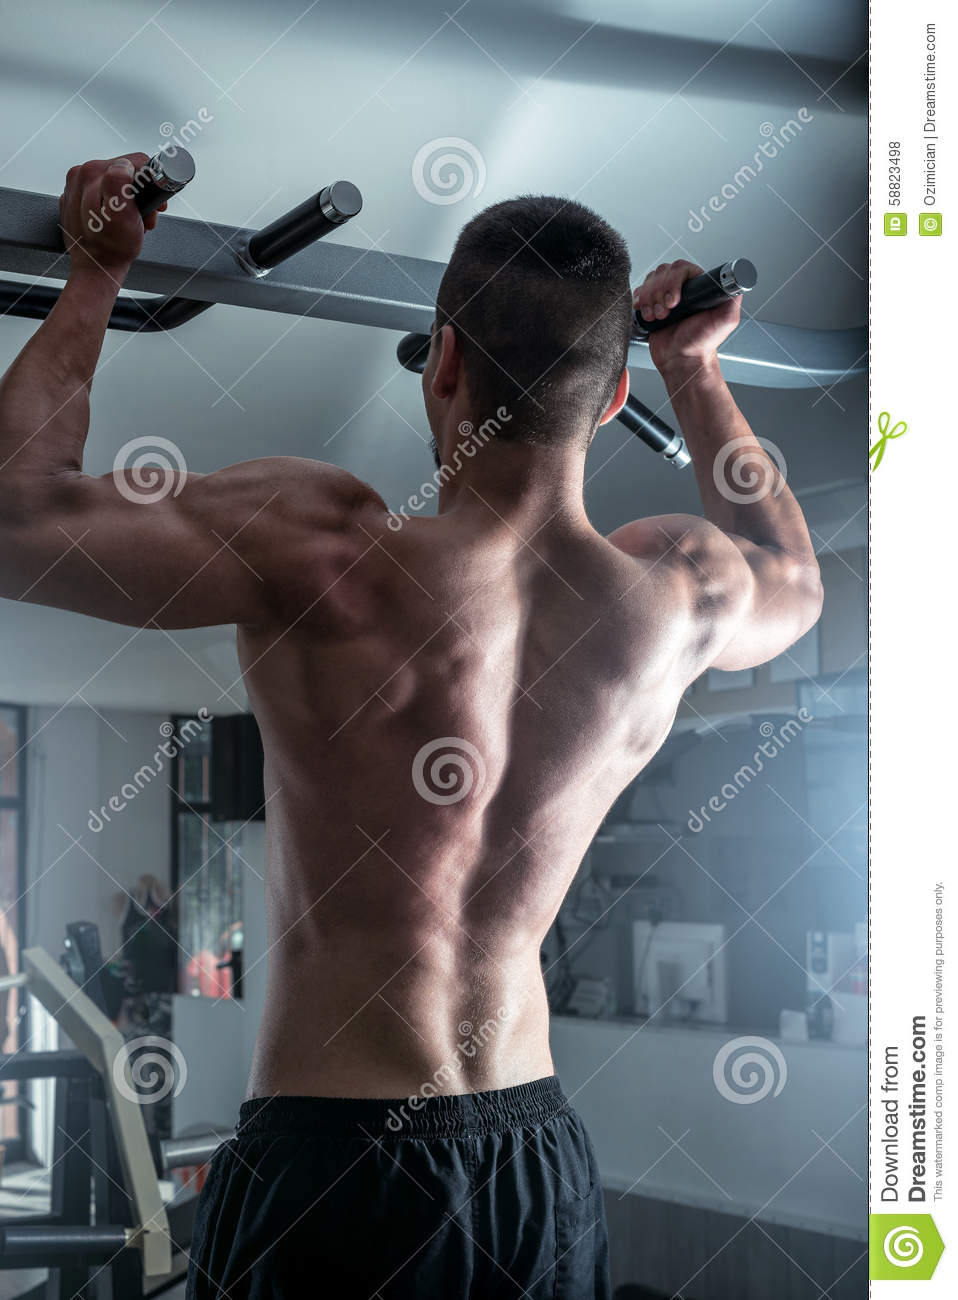 pull ups in gym stock photo. image of definition, athlete - 58823498